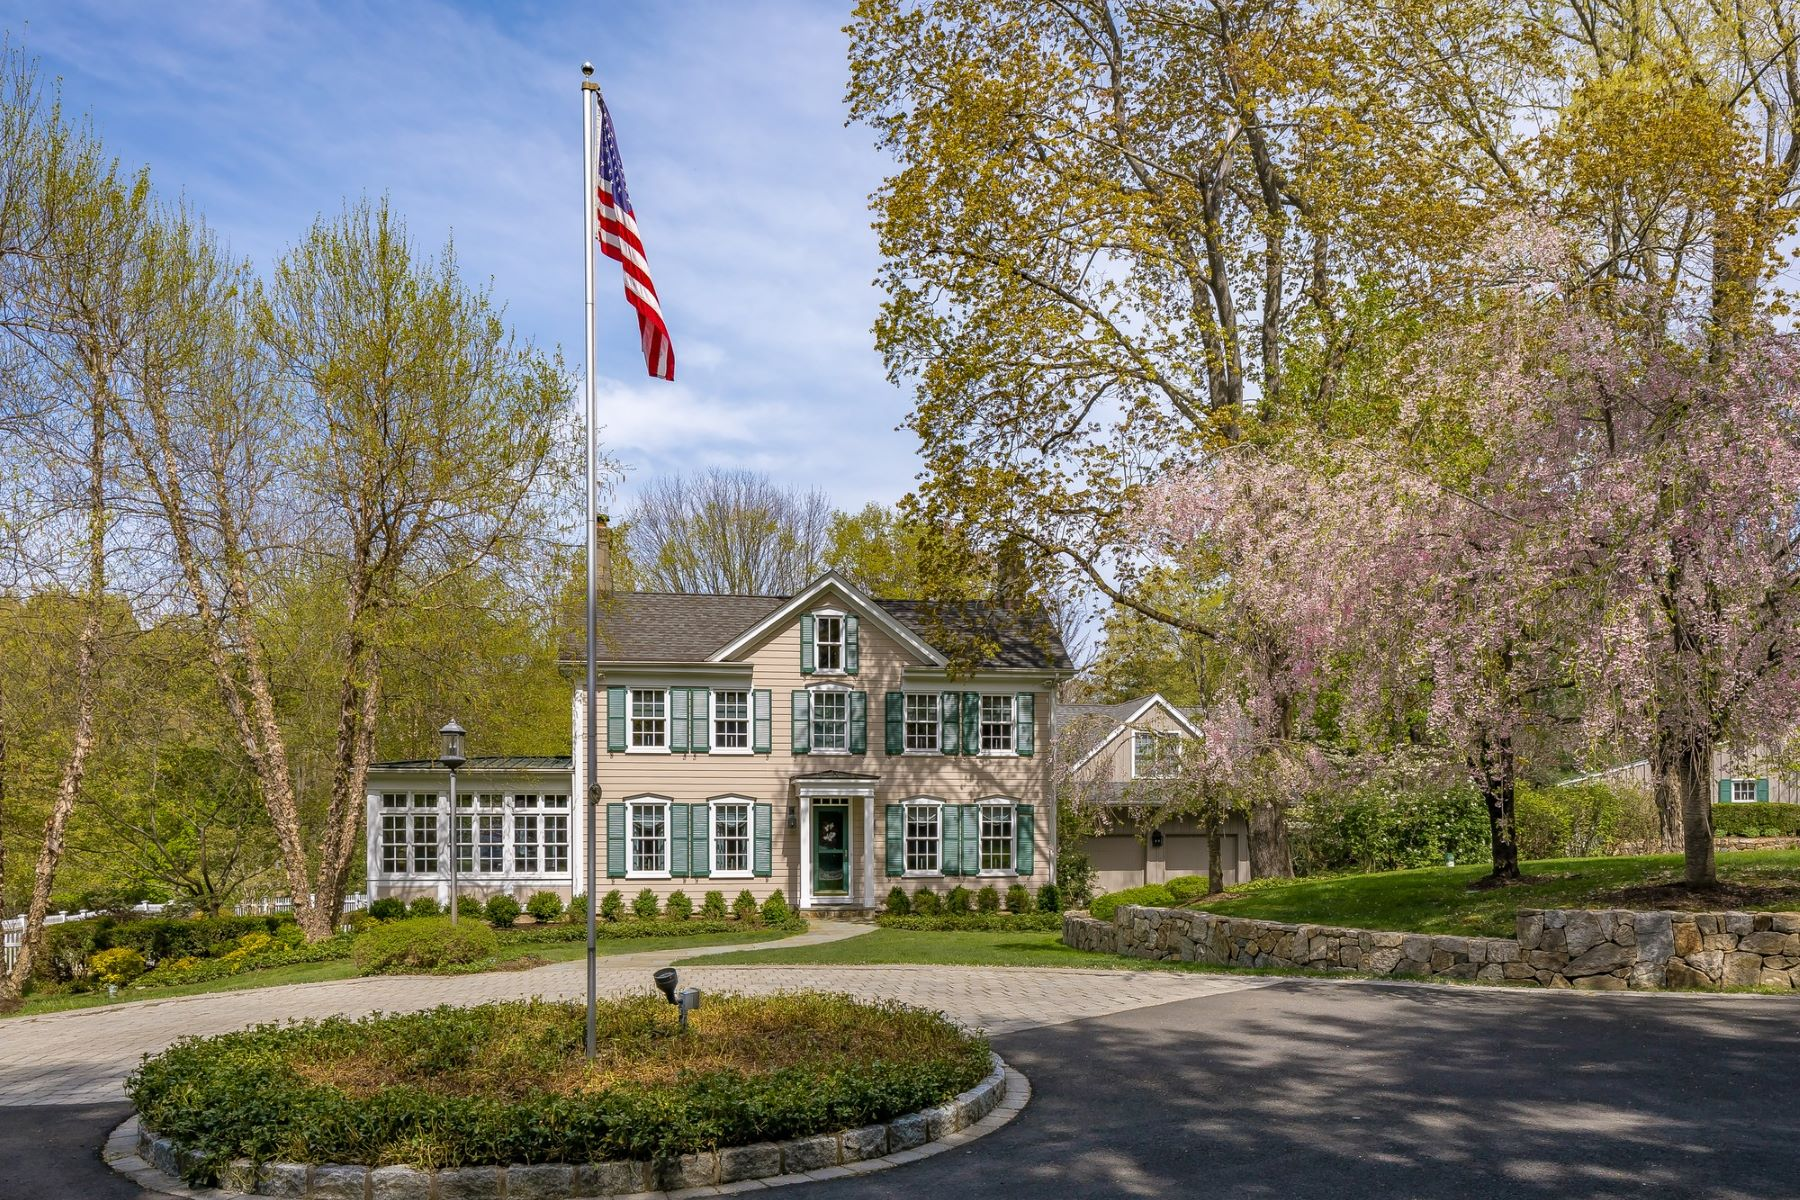 Single Family Homes for Sale at Leaning Oak Pond 351 Hilltop Road Mendham, New Jersey 07945 United States